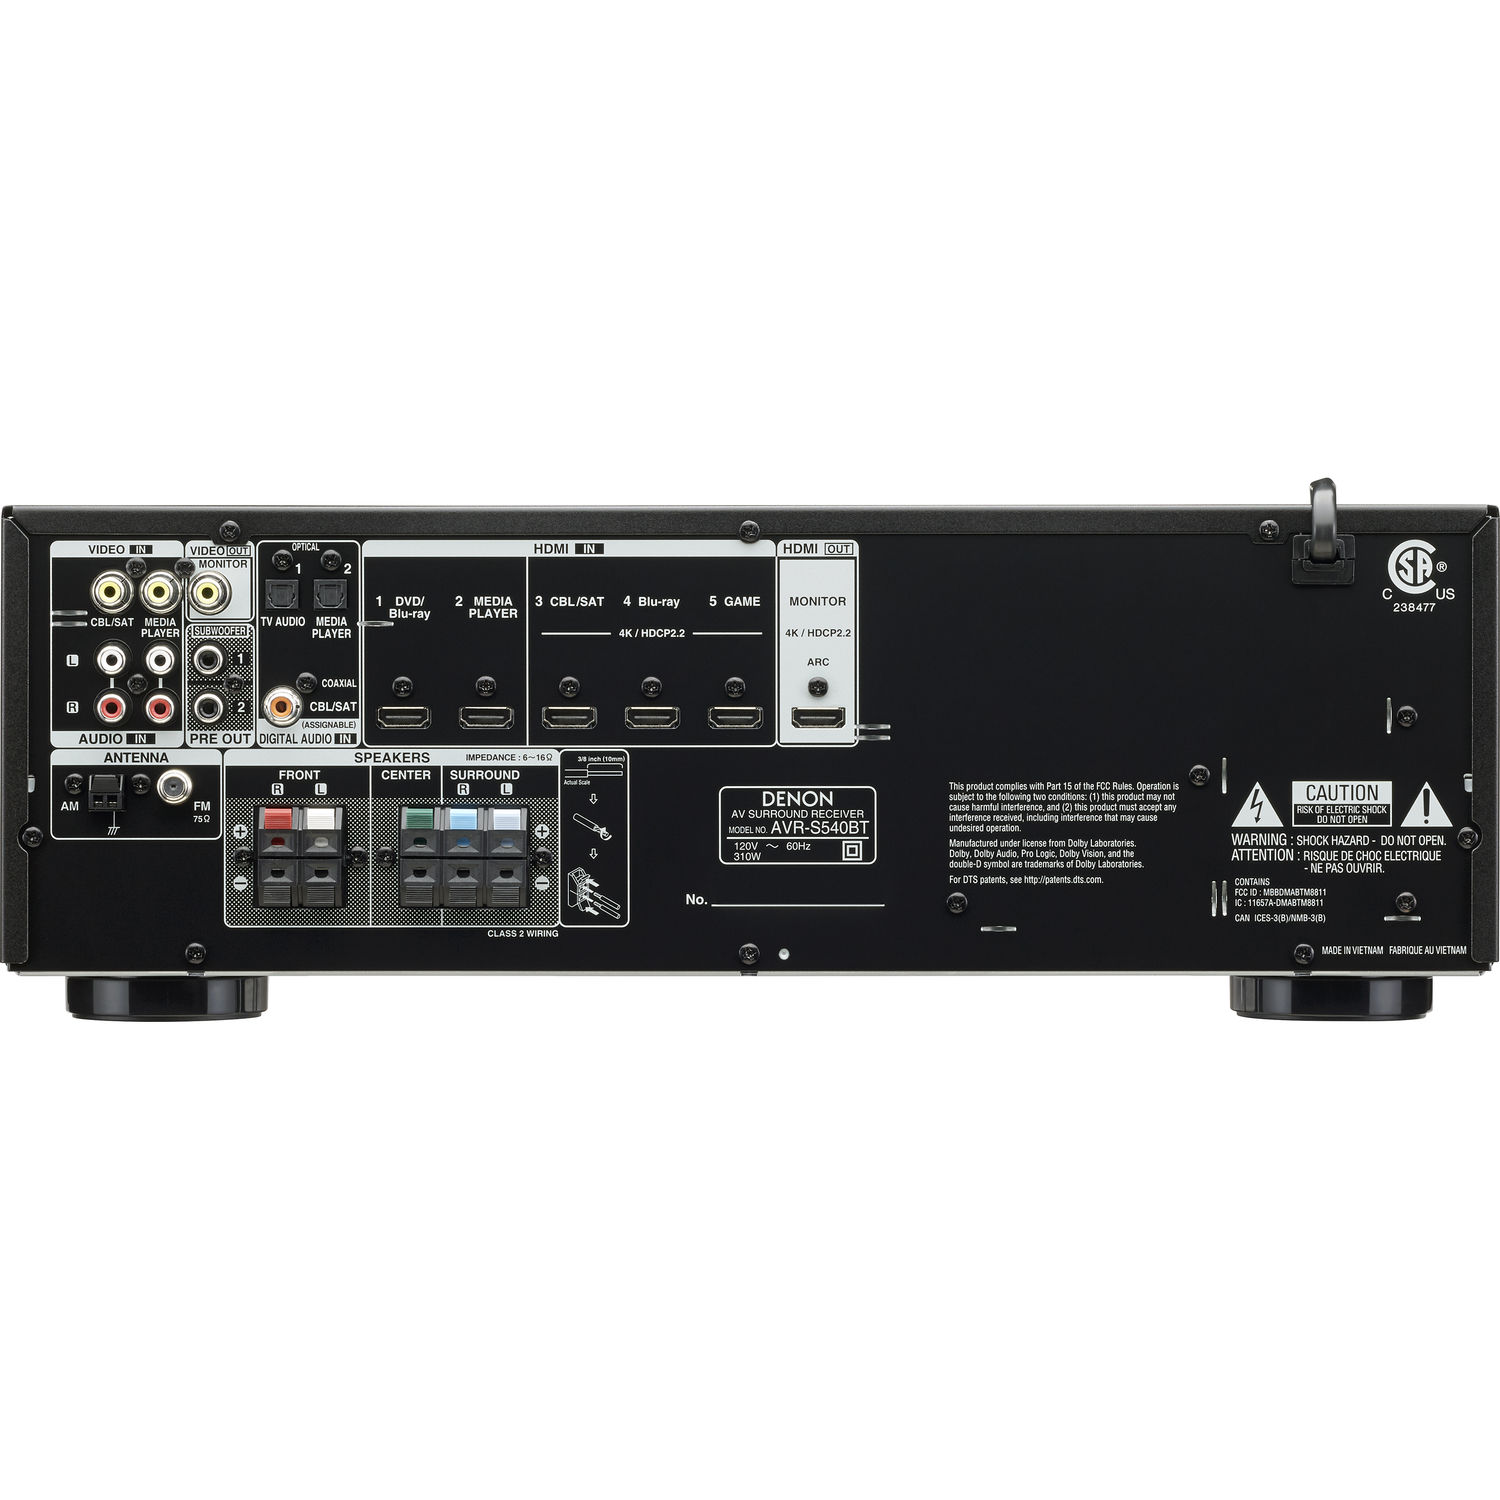 Denon AVR-S540BT 5 2-Channel A/V Receiver